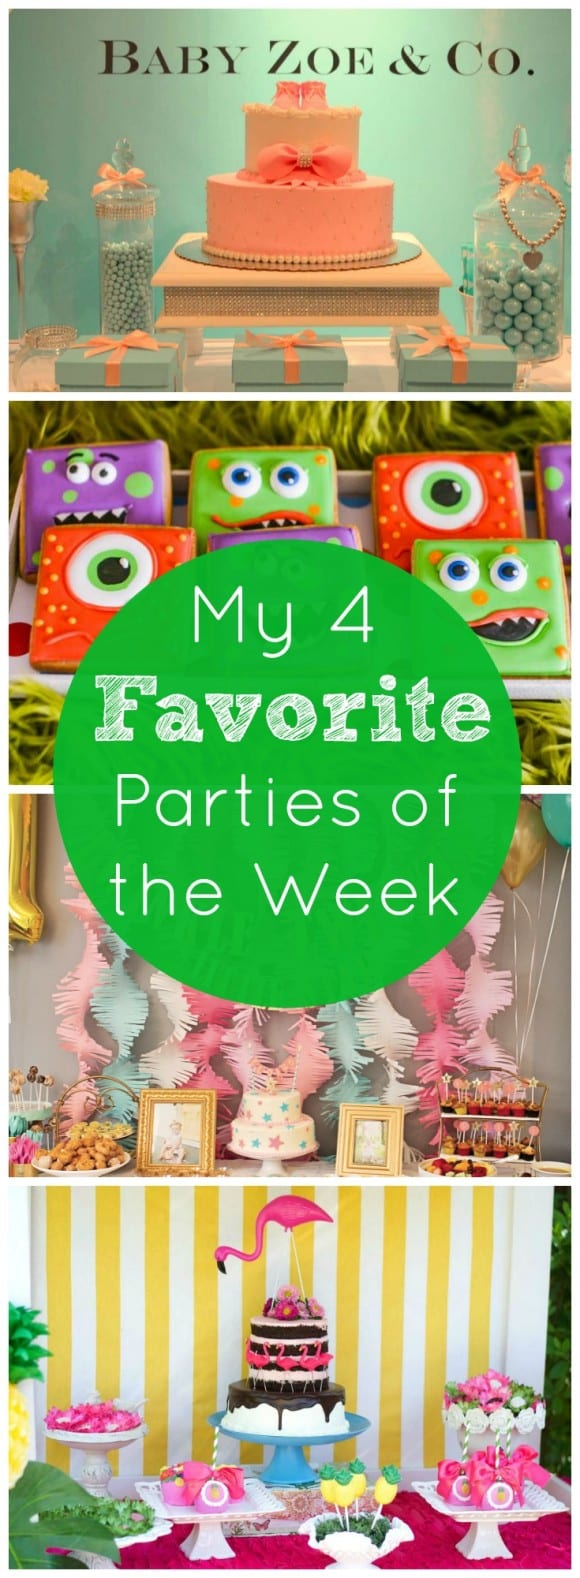 My 4 favorite parties of the week include a Tiffany and Co. baby shower, a monster 1st birthday bash, a twinkle twinkle 1st birthday, and a flamingo and pineapple party! | CatchMyParty.com